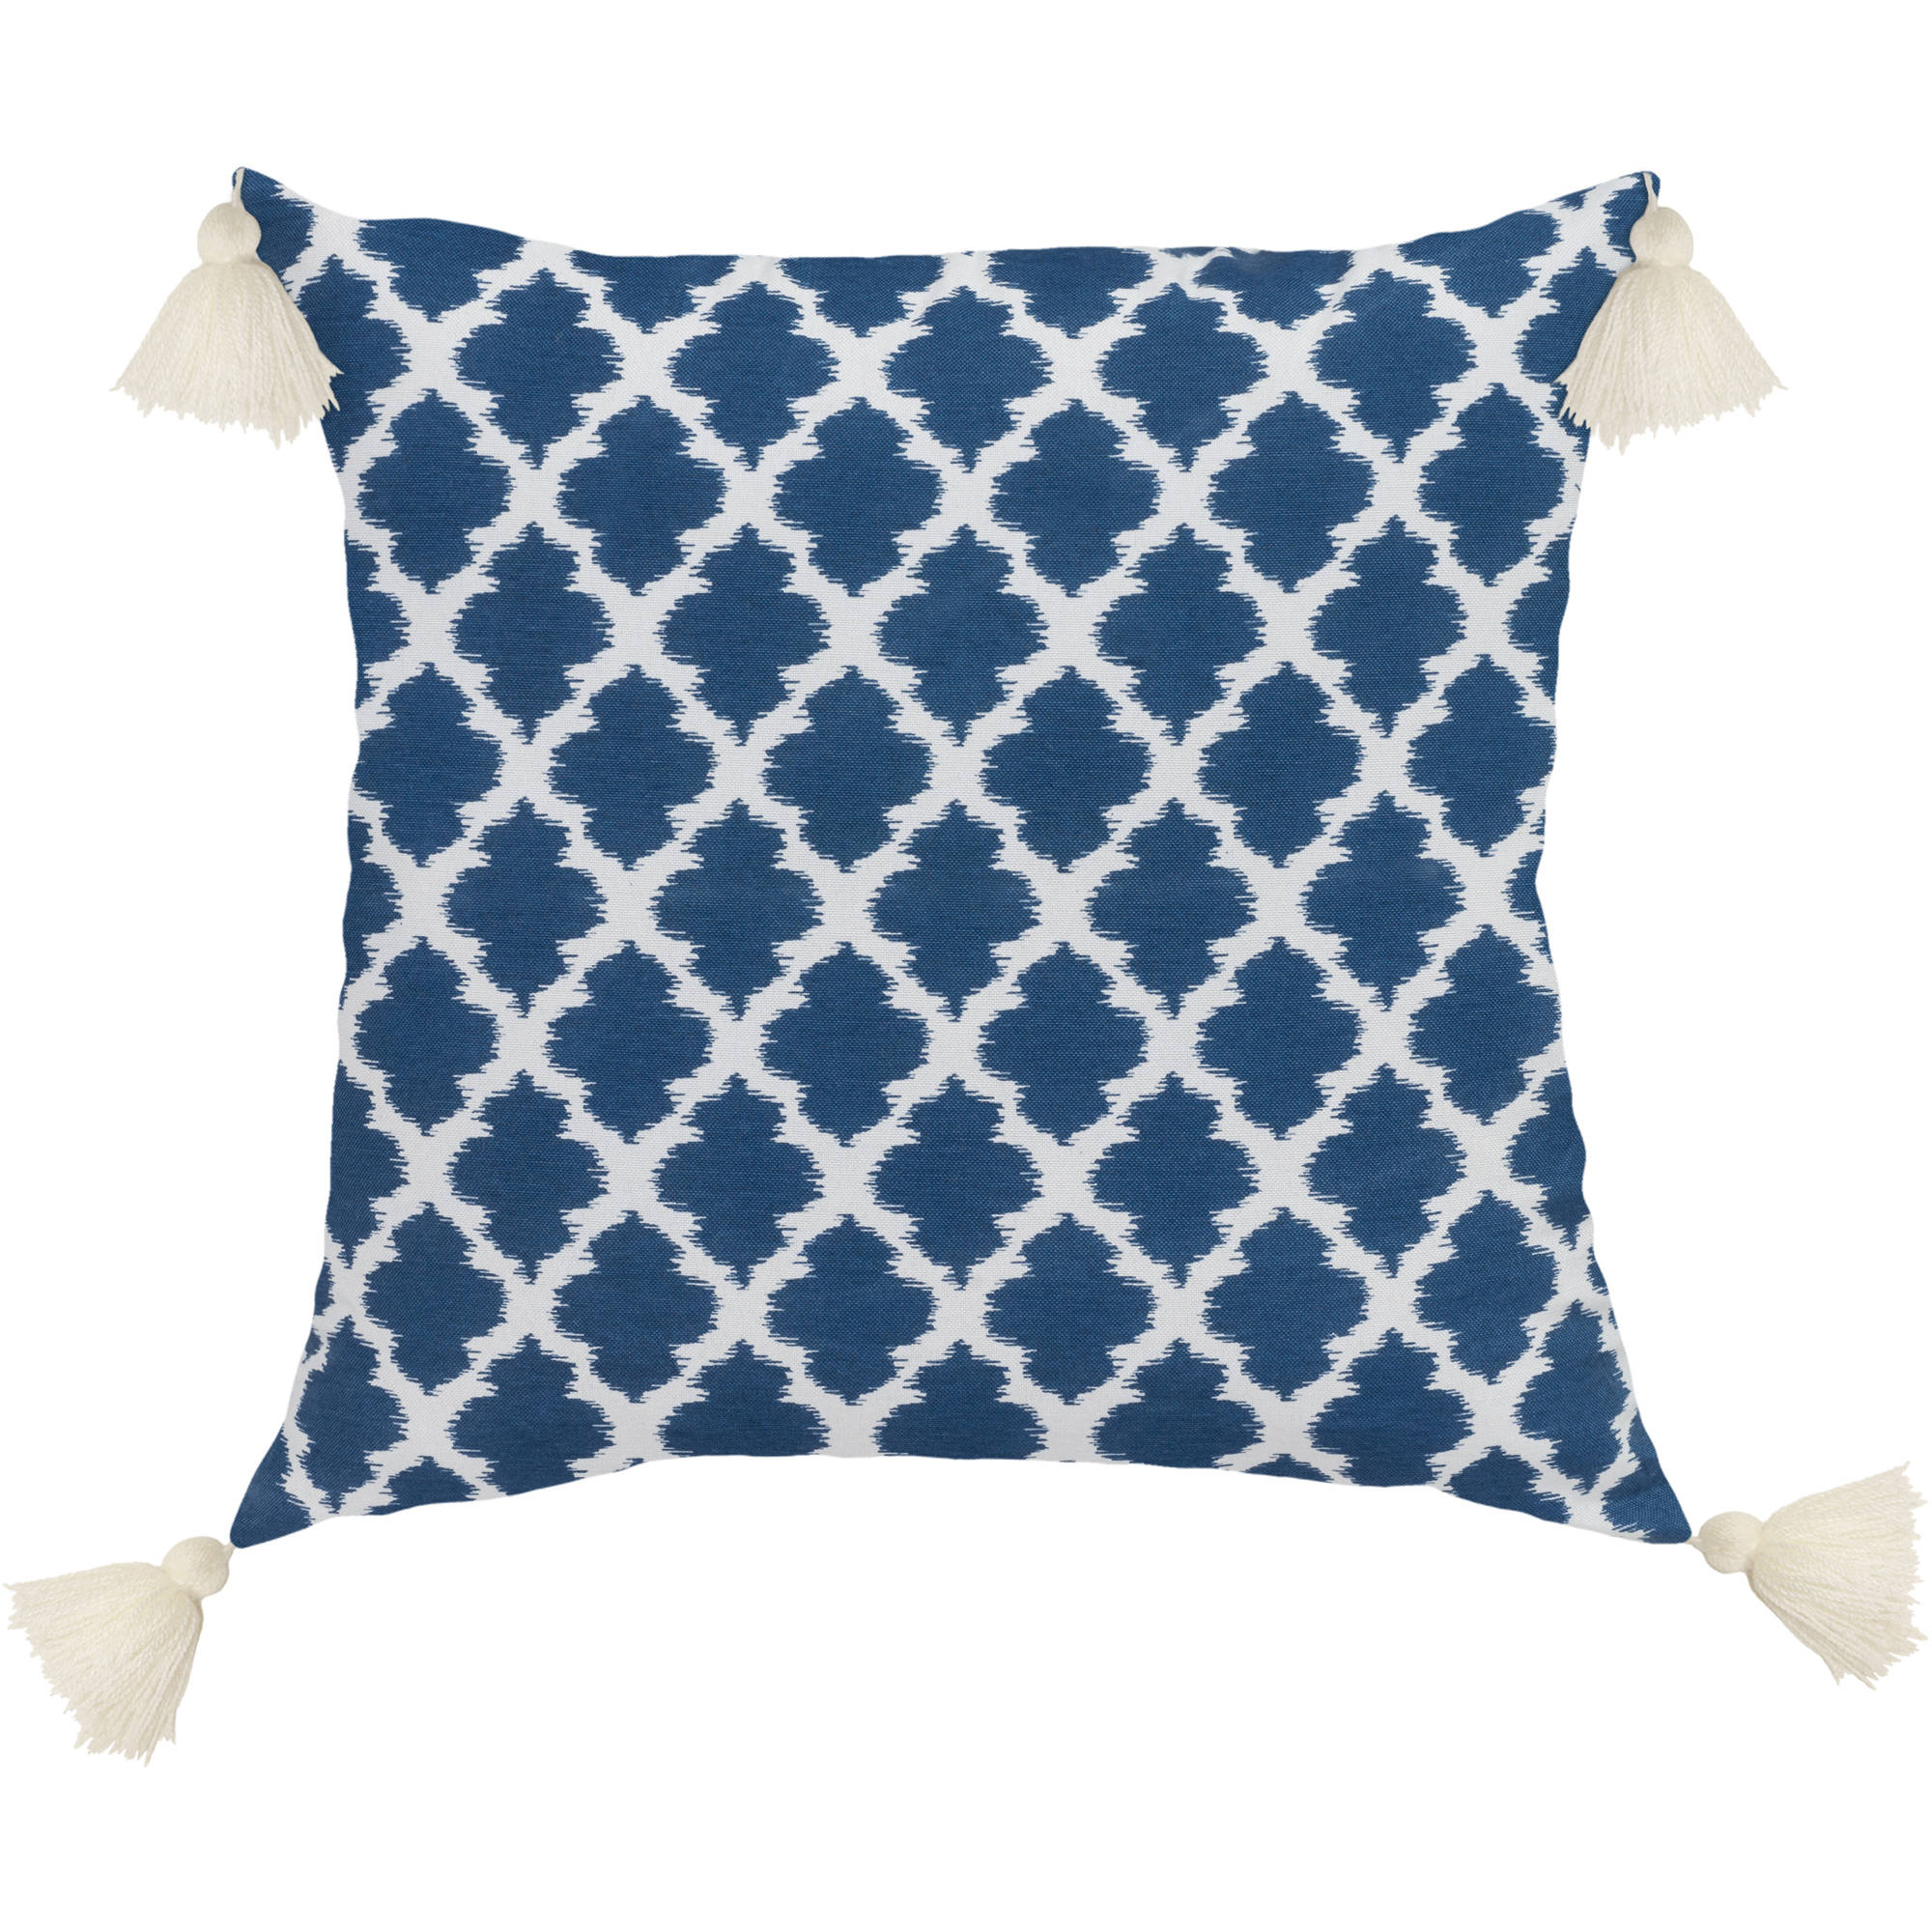 "Better Homes and Gardens Indigo Tangier 18"" x 18"" Poly/Cotton Fabric Printed Geometric Ikat Design Pillow with 4 Contrasting Decorative Tassels"